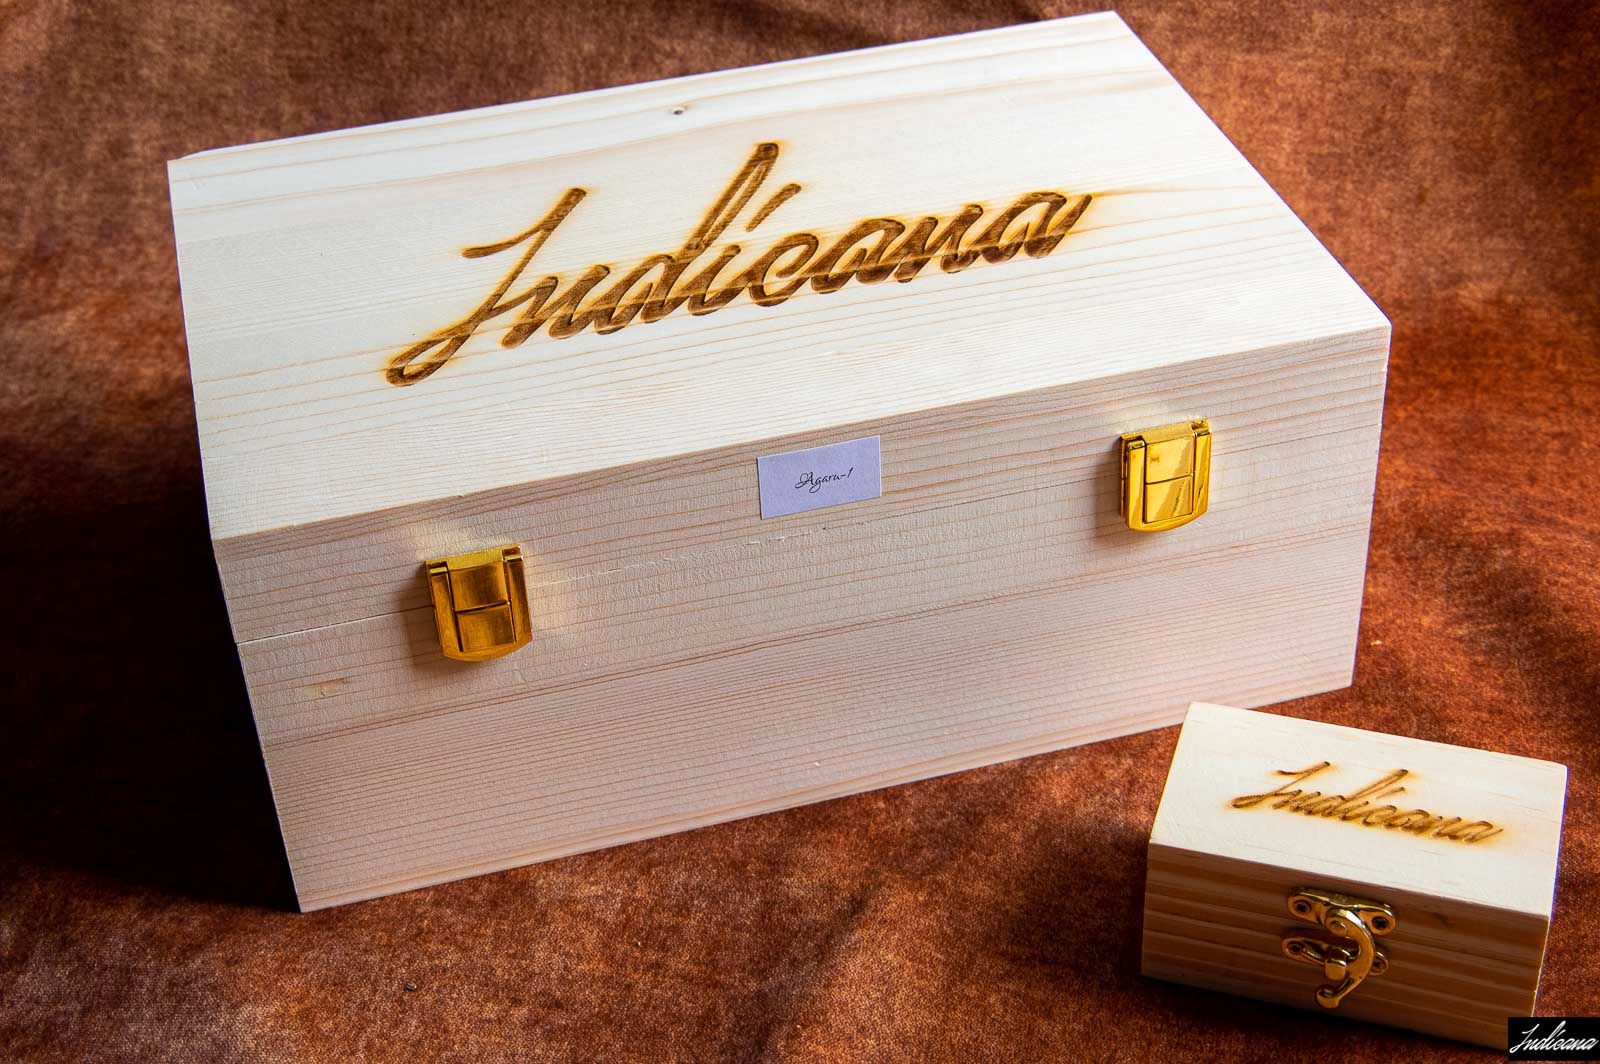 Pine Wood Boxes RIL Used for Gifting Aramco and Saudi Royal Family - By Indicana Oud